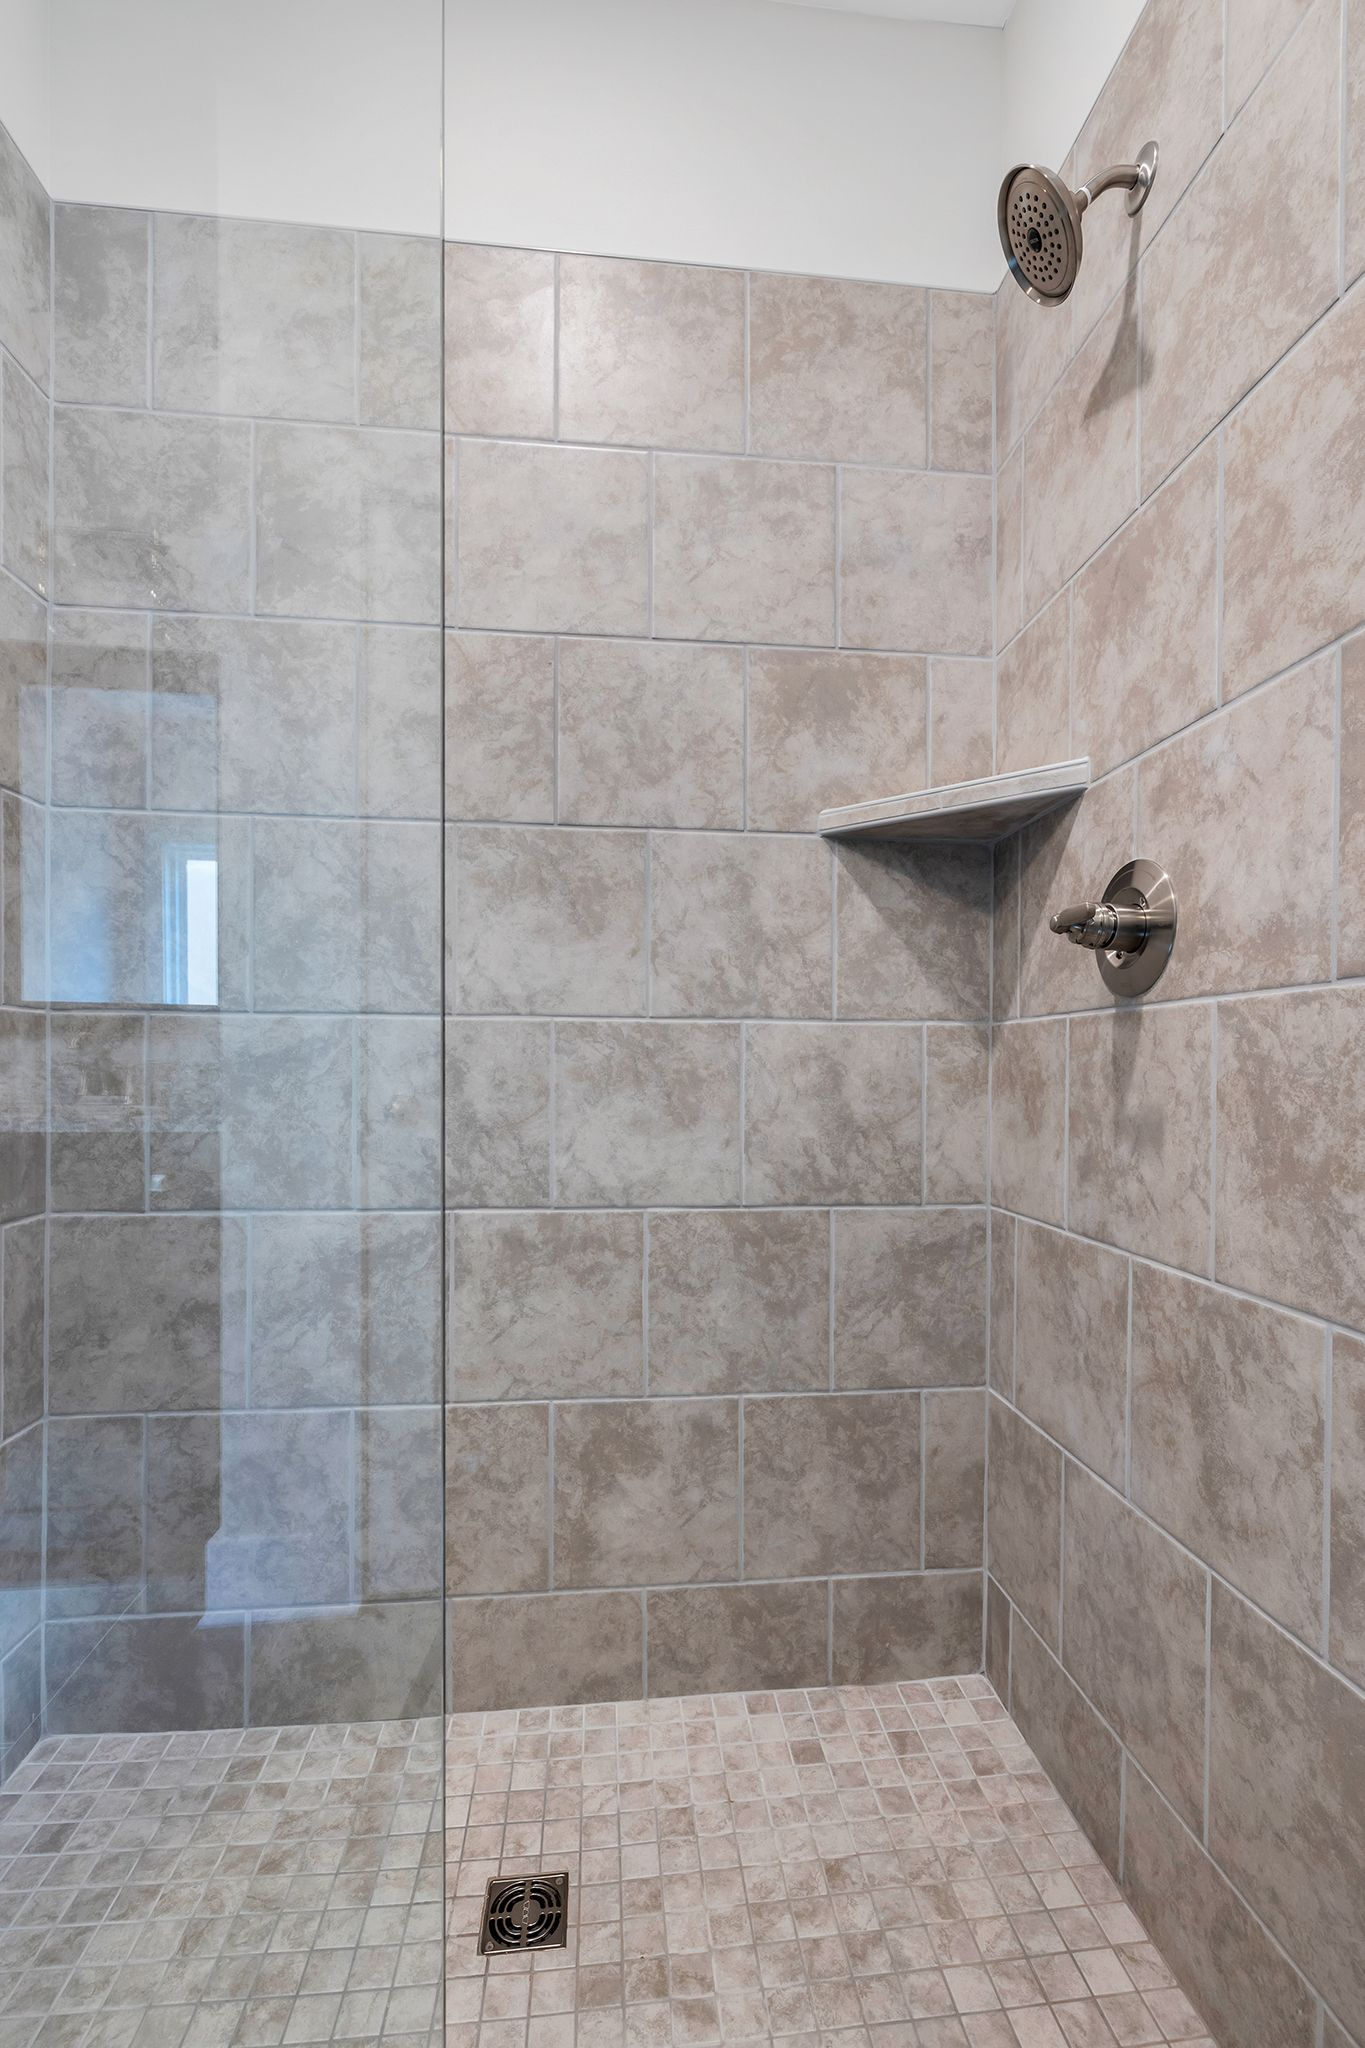 Bathroom featured in The Hanover By Goodall Homes in Chattanooga, TN